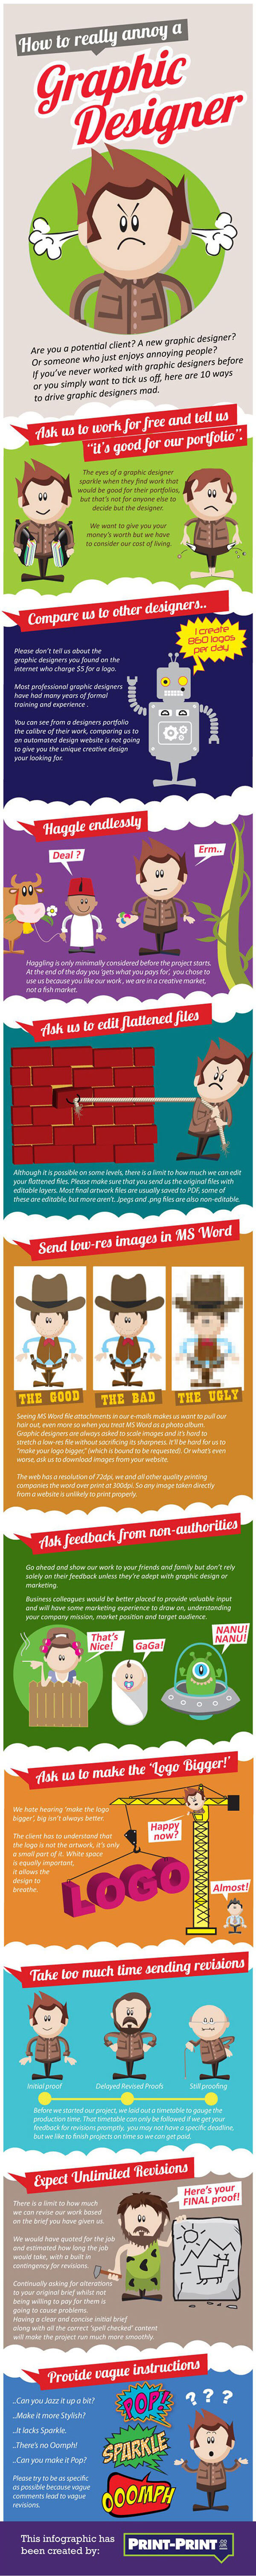 Infographic: How to really annoy a graphic designer